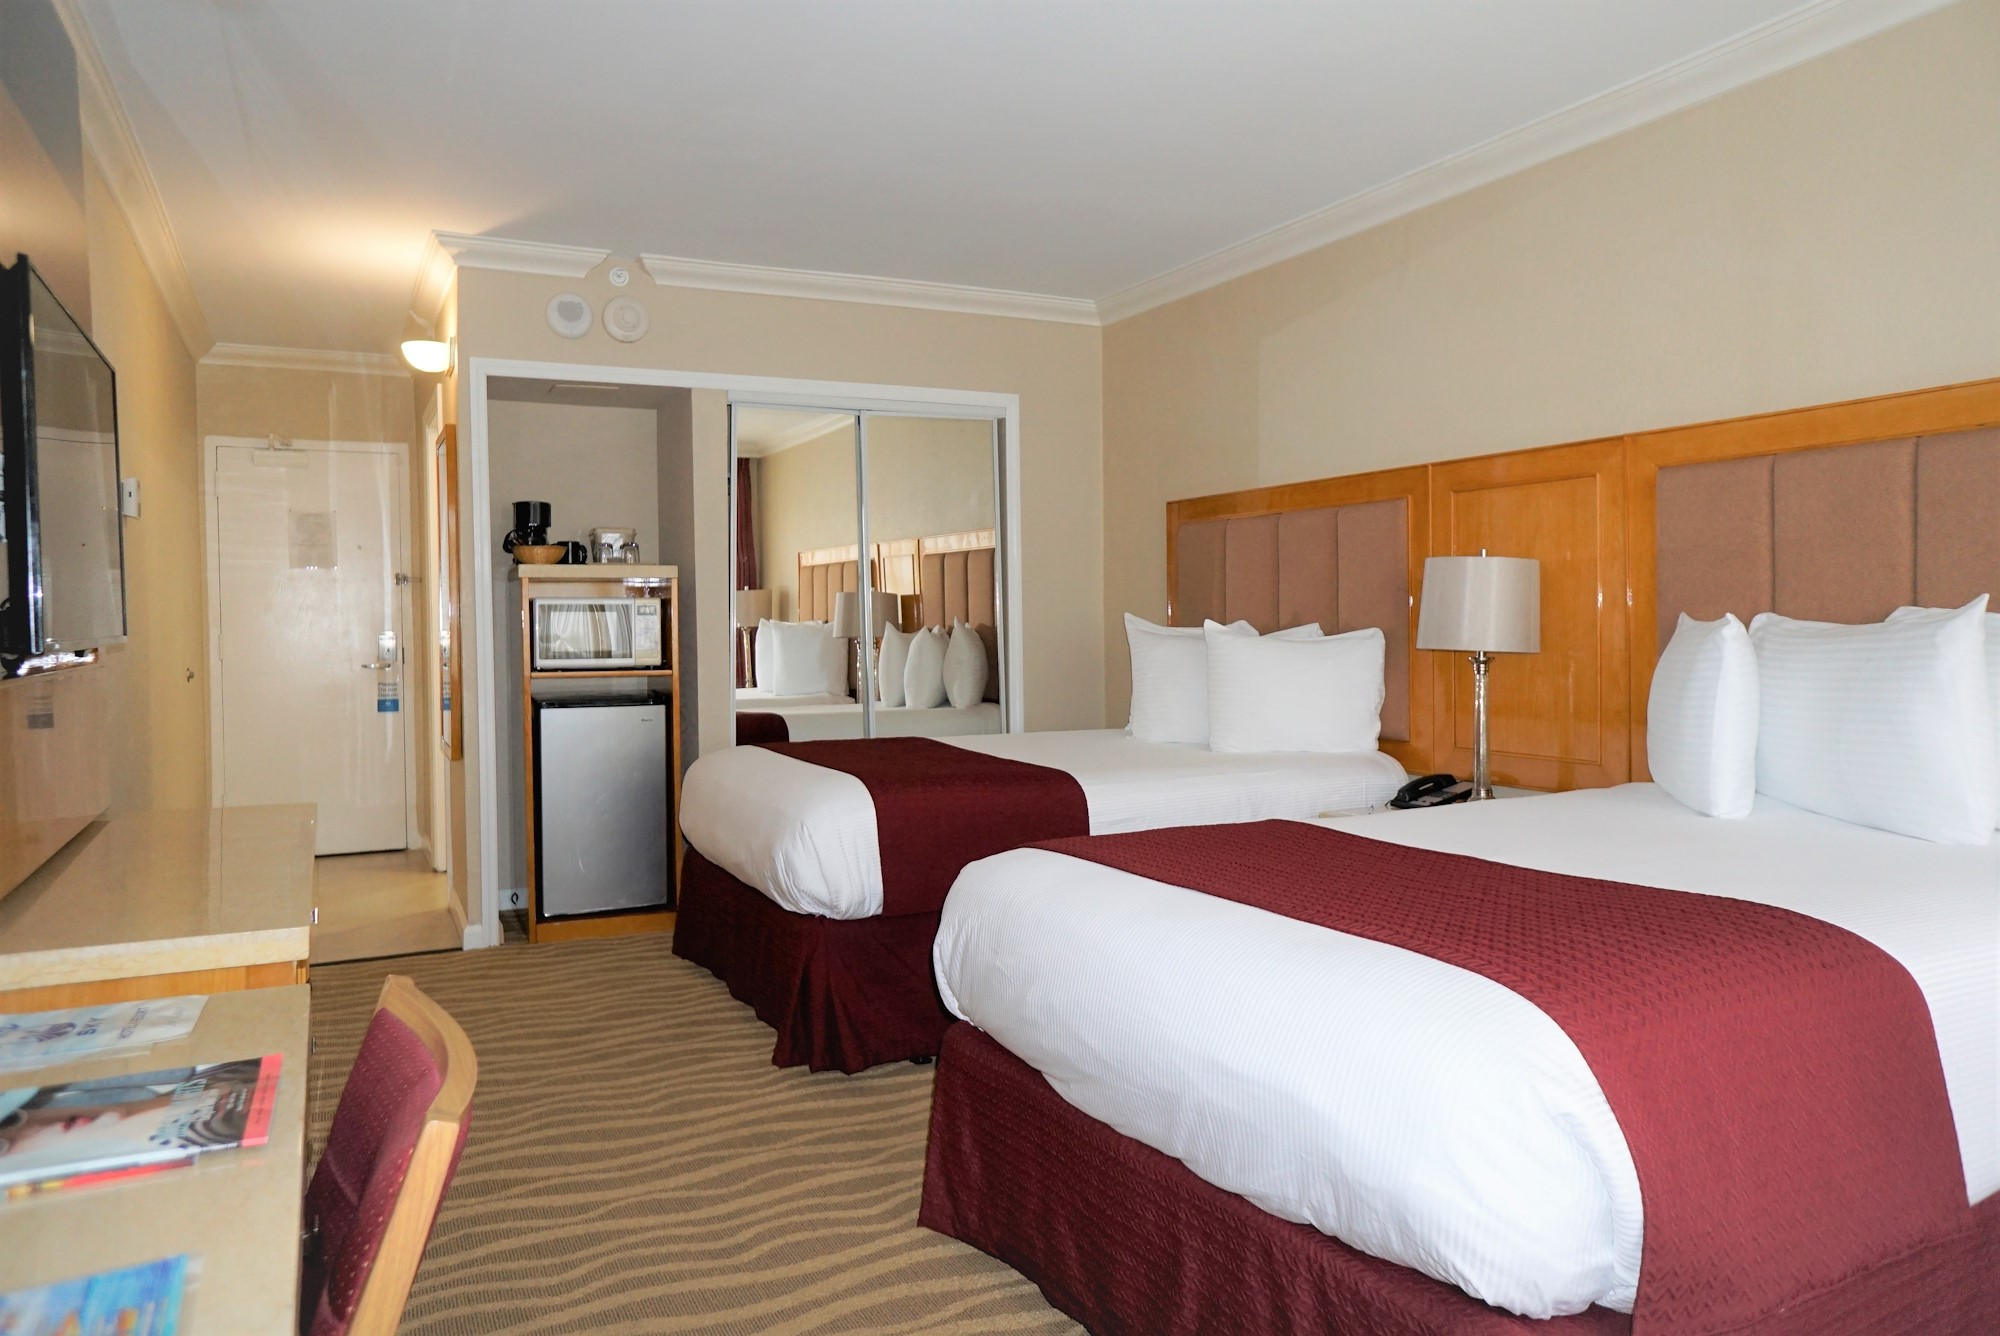 Fort Lauderdale Beach Hotel Rooms and Suites